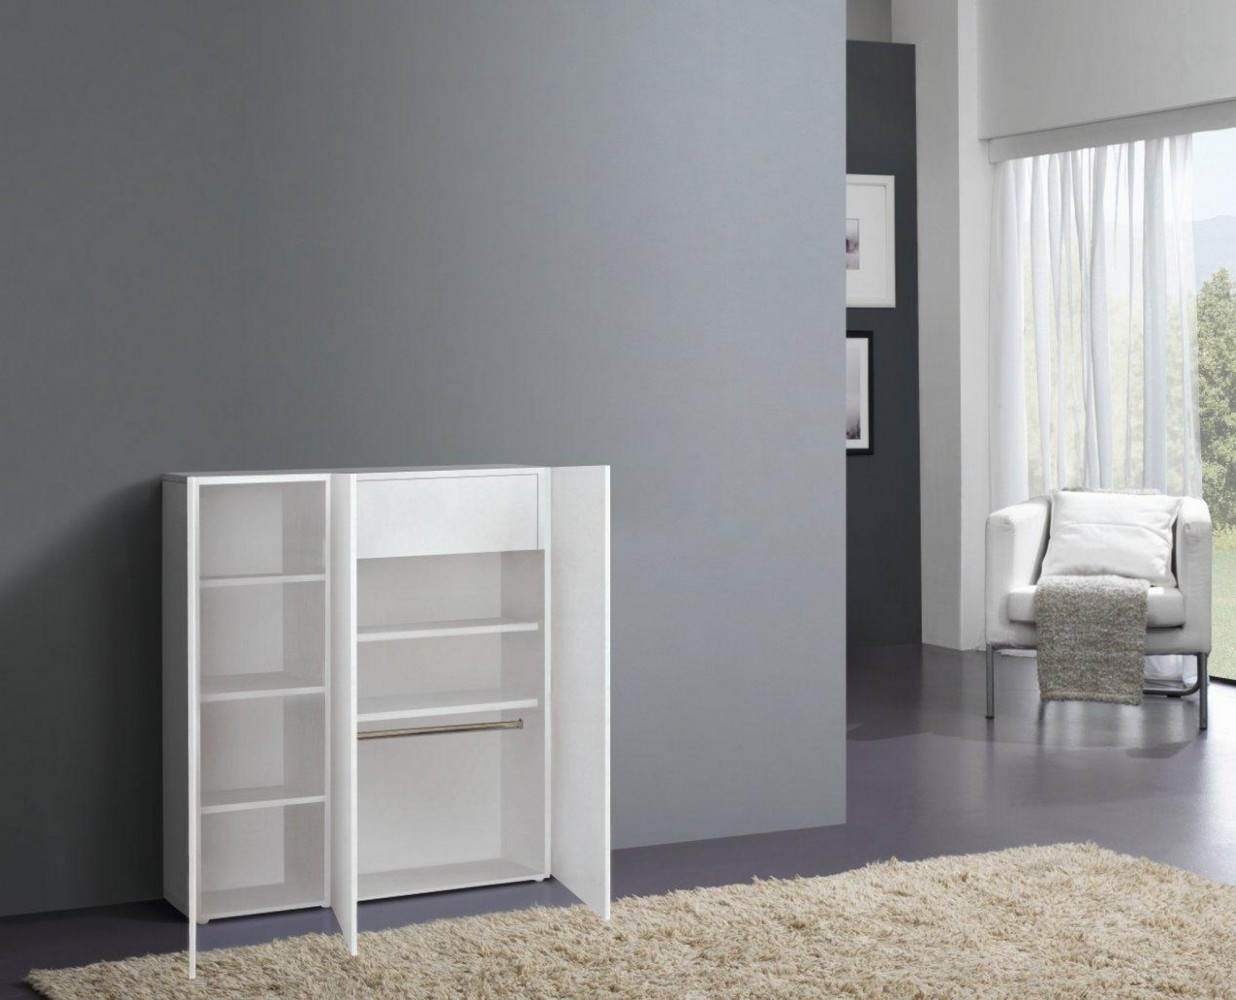 tecnos onda garderoben set 3 tlg flur kommode paneel. Black Bedroom Furniture Sets. Home Design Ideas